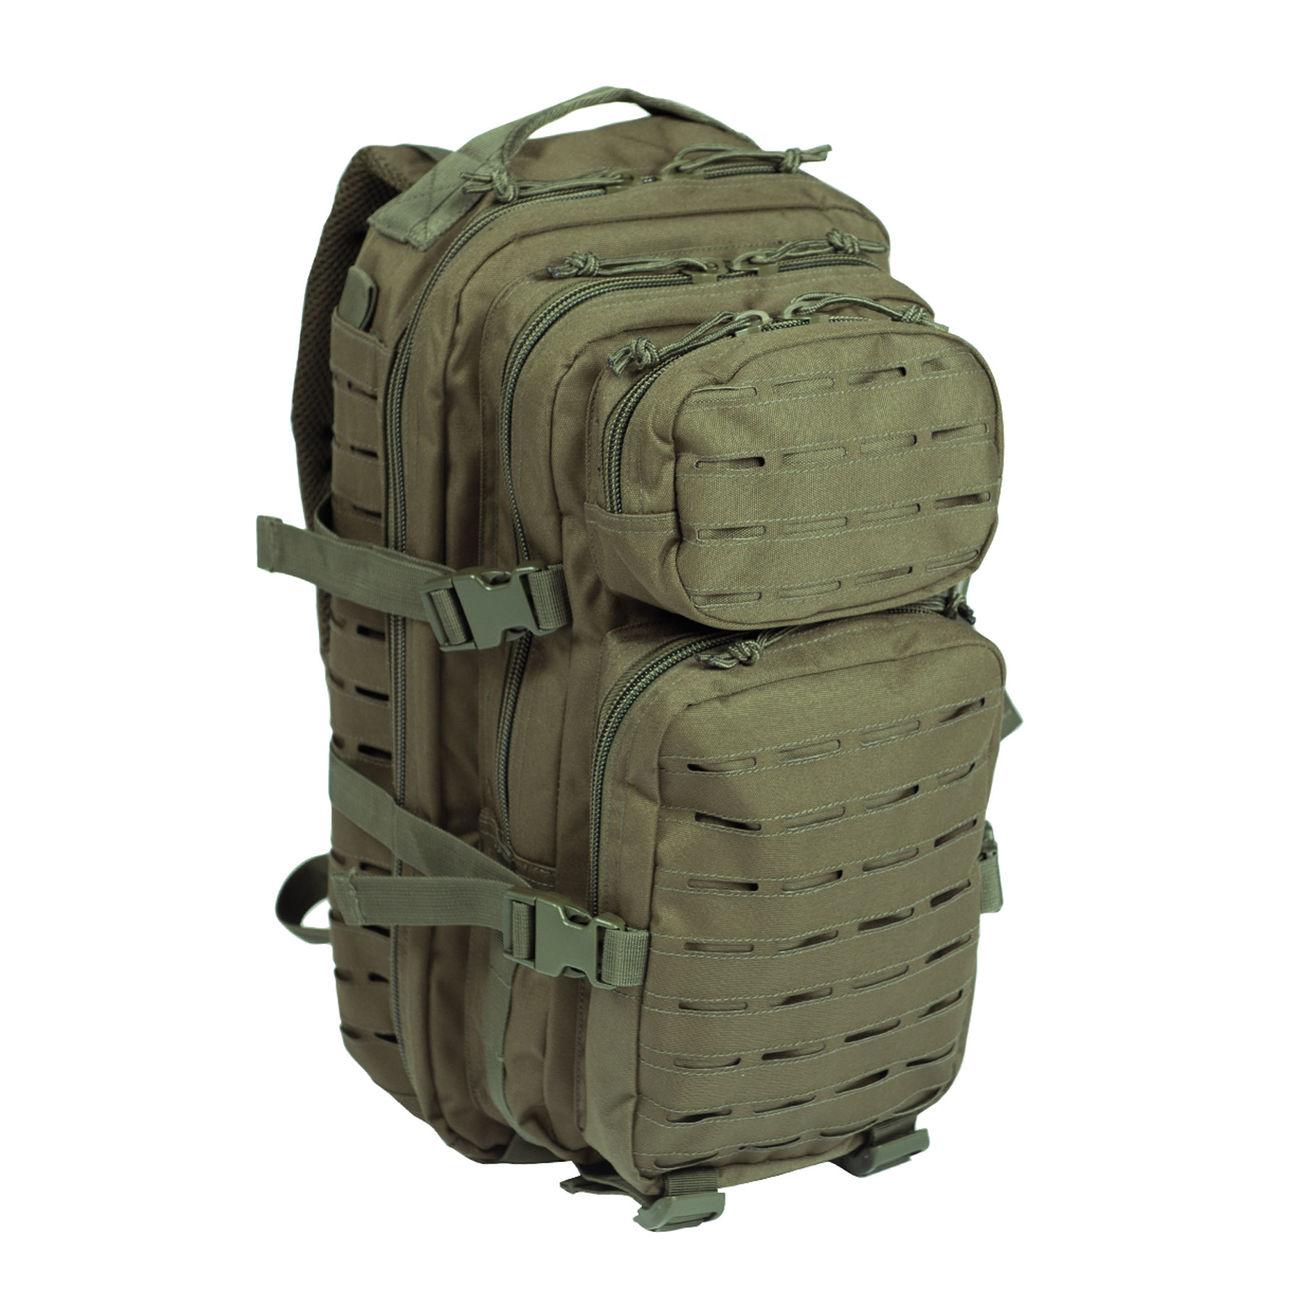 Mil-Tec Rucksack US Assault Pack Laser Cut small 20L oliv 0